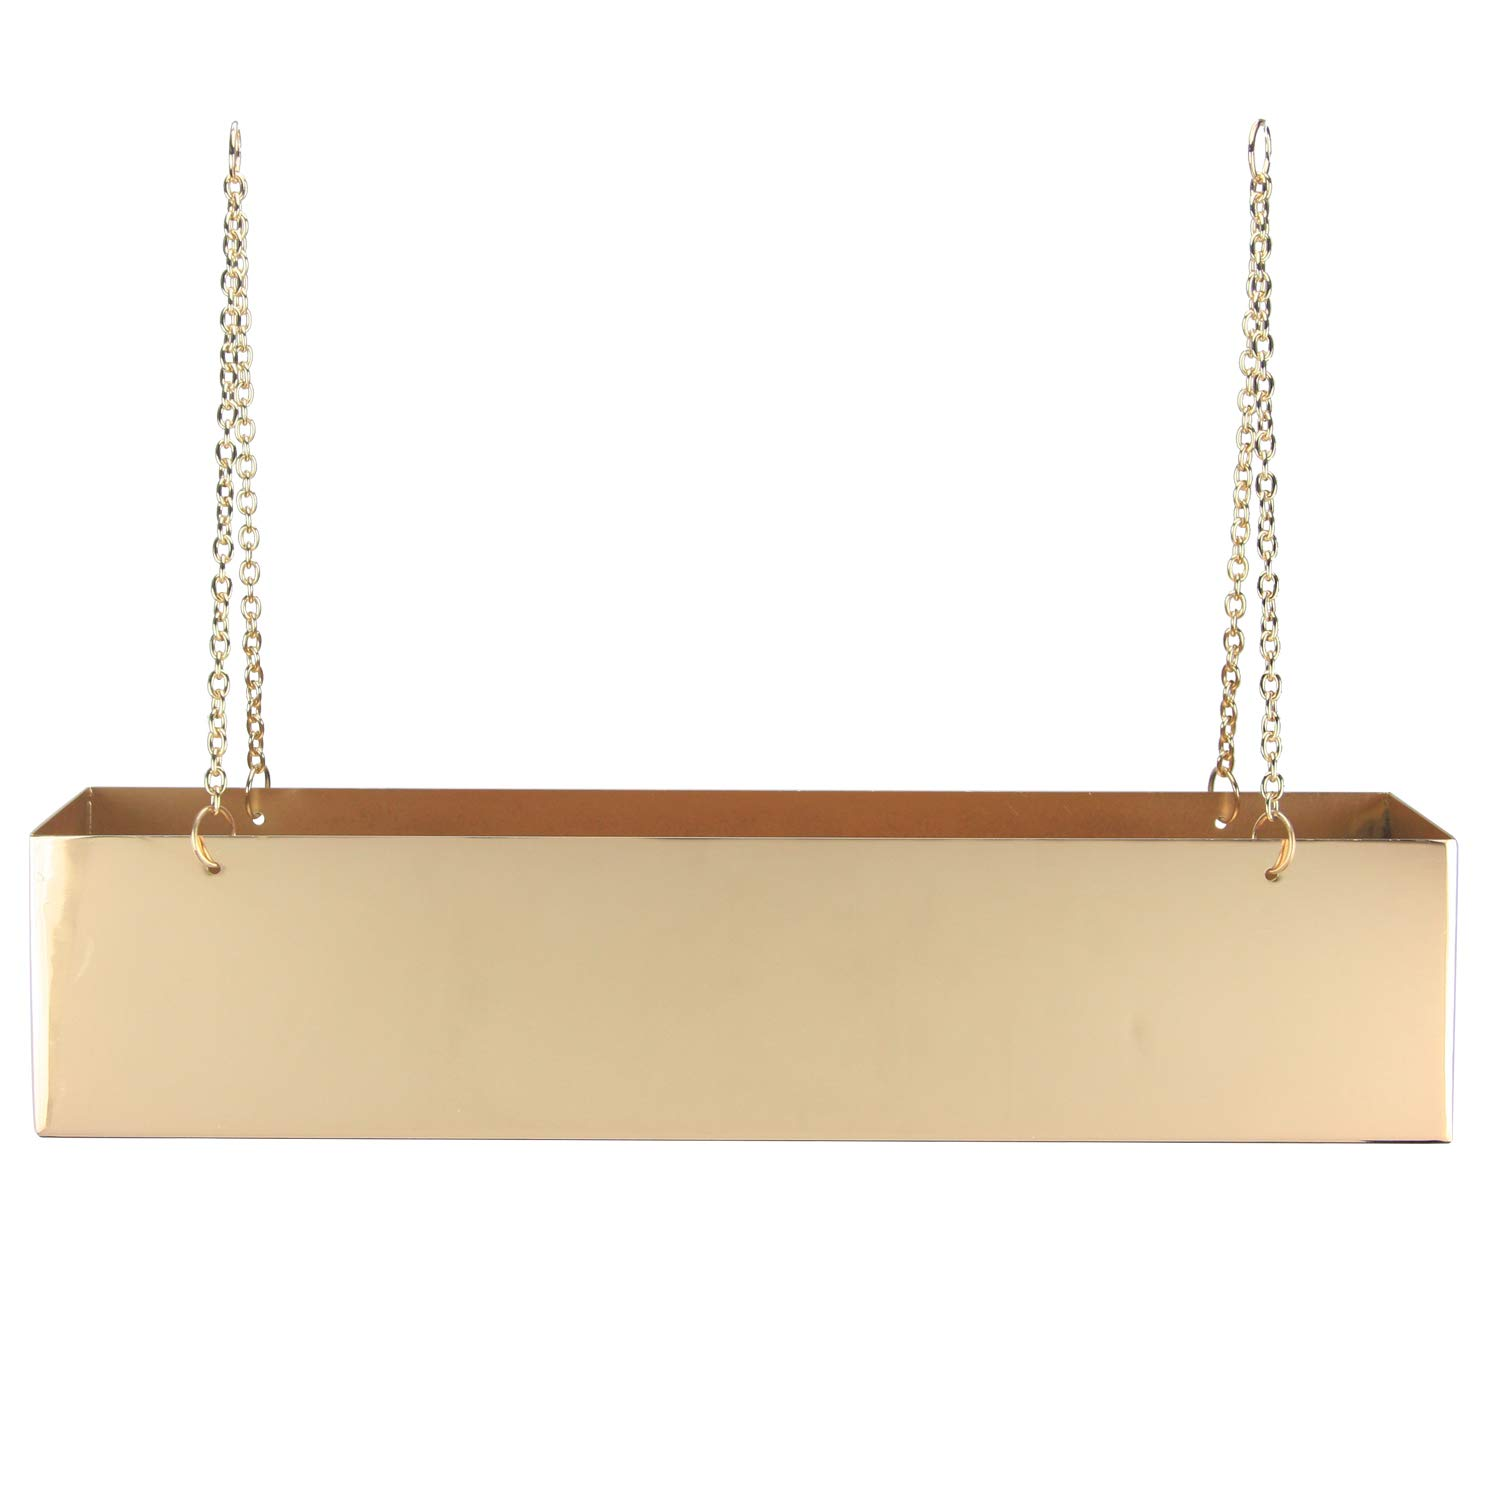 Large Metallic Rectangle Hanging Planter with Metal Chains for Flowers, Cactus and Succulents Indoor or Outdoor